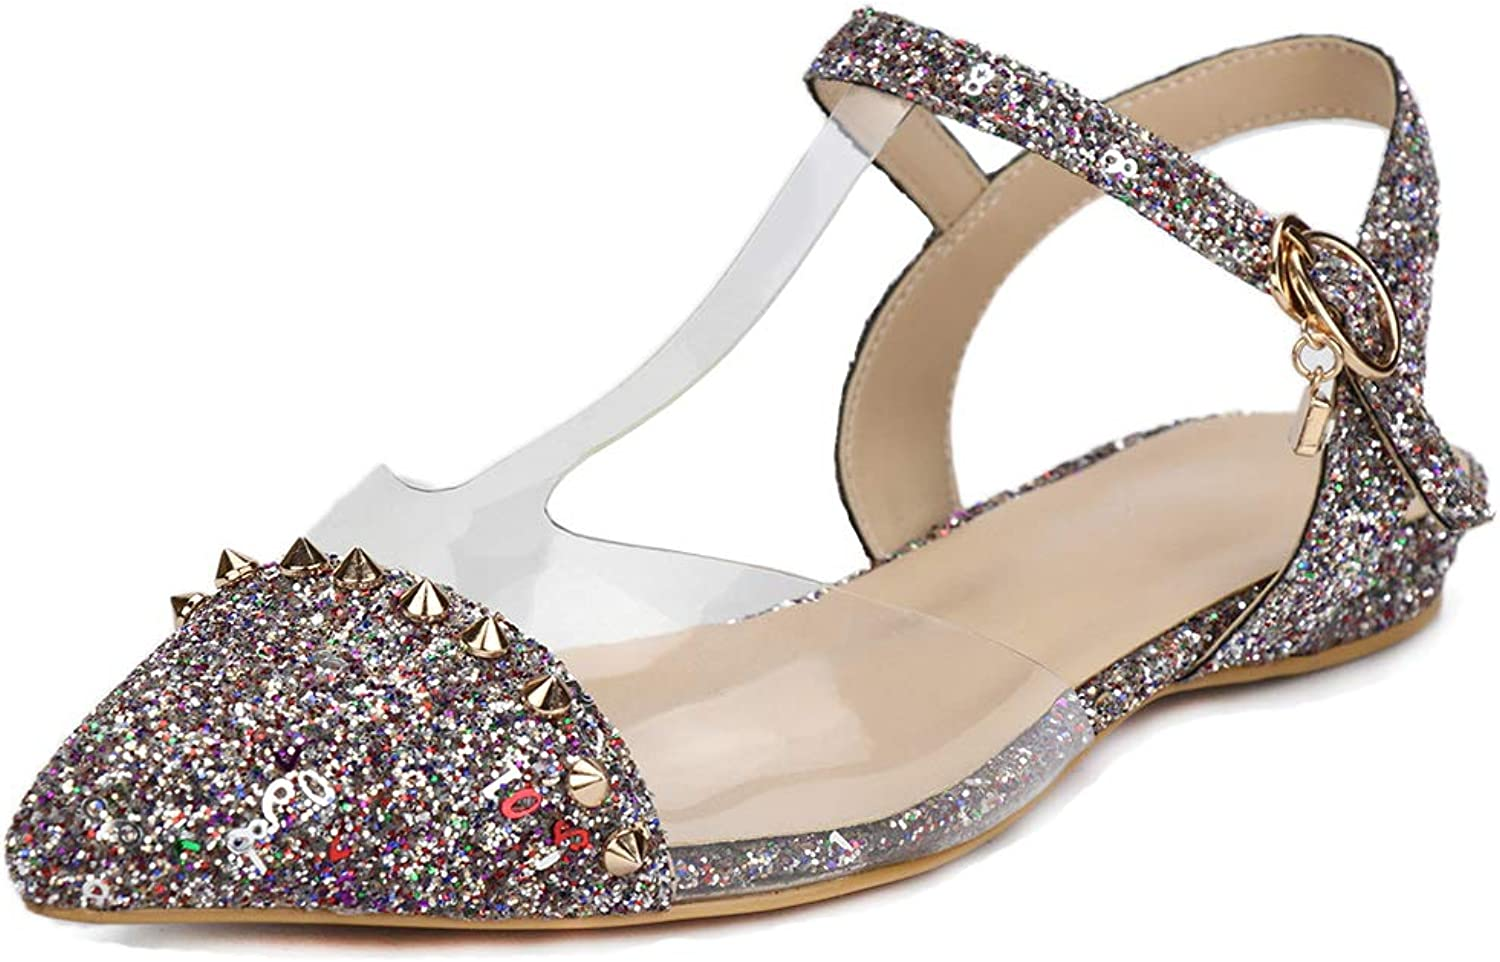 SaraIris Women's Pointed Toe Flat Heel Comfortable Ballet Buckle Strap D'Orsay Glitter shoes